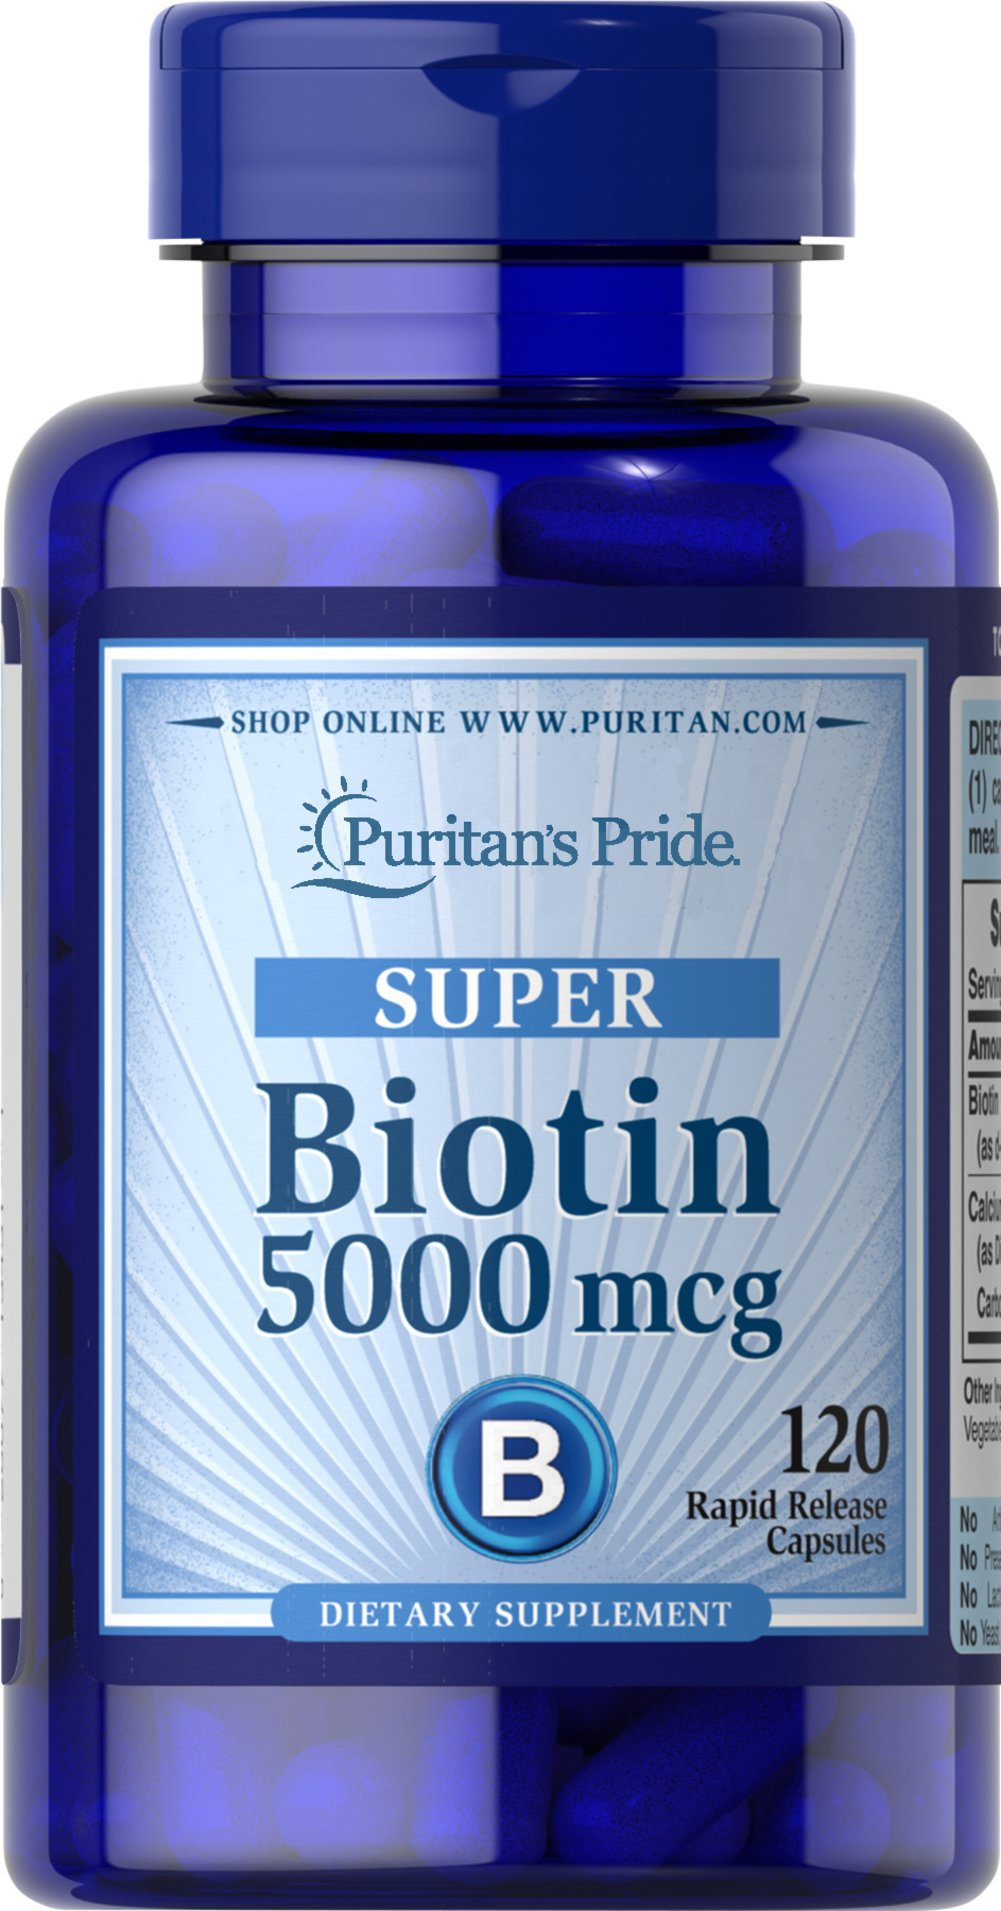 Biotin 5000 mcg <p>Supports Skin & Hair Health**</p><p>Found in foods such as oatmeal and soy, Biotin, a water-soluble B vitamin, assists in energy metabolism in cells.** Biotin helps to support healthy skin and hair.**</p>   120 Capsules 5000 mcg $11.99